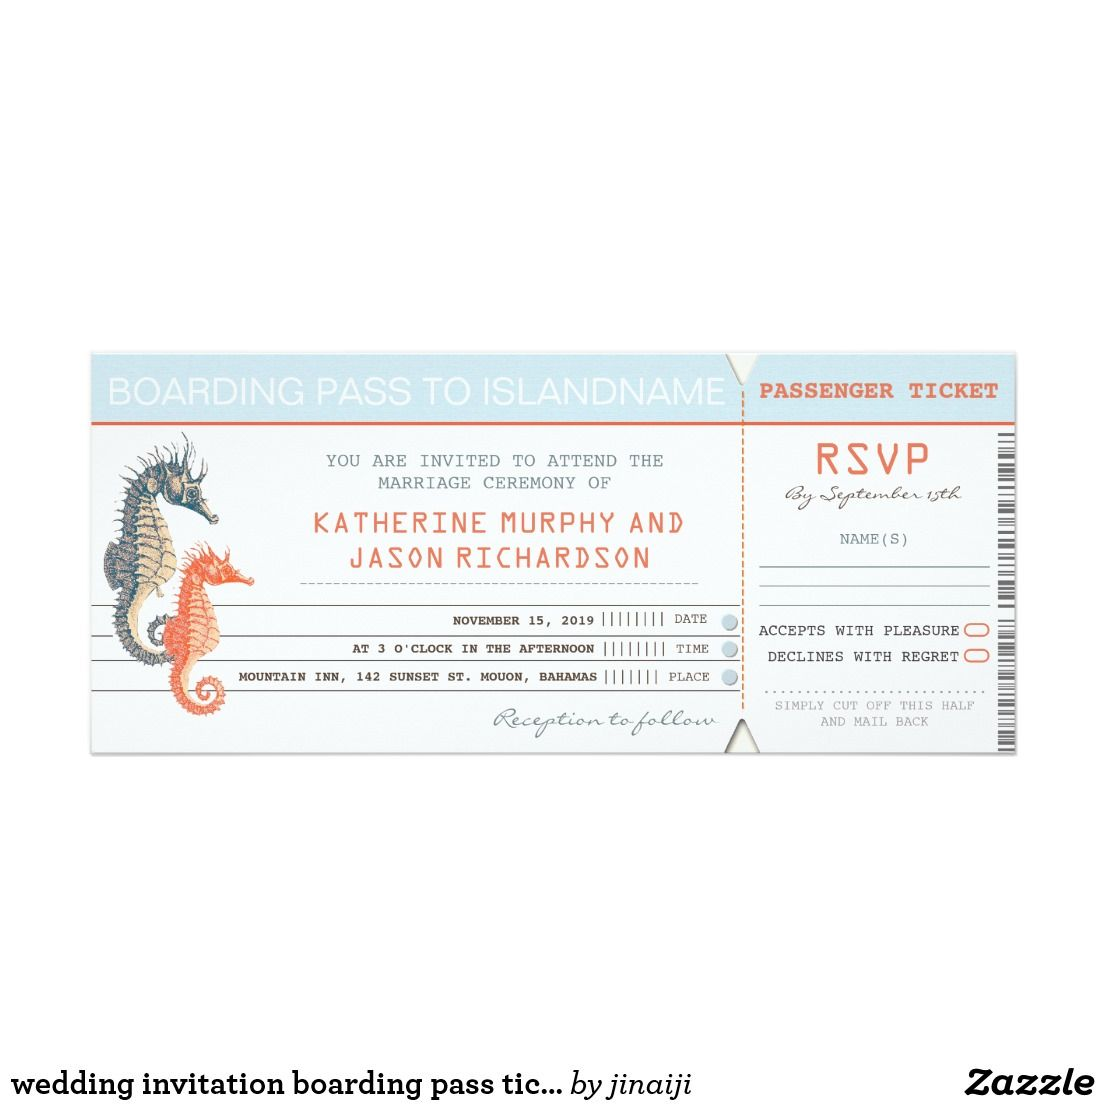 Wedding invitation boarding pass tickets pinterest boarding pass wedding invitation boarding pass tickets stopboris Gallery